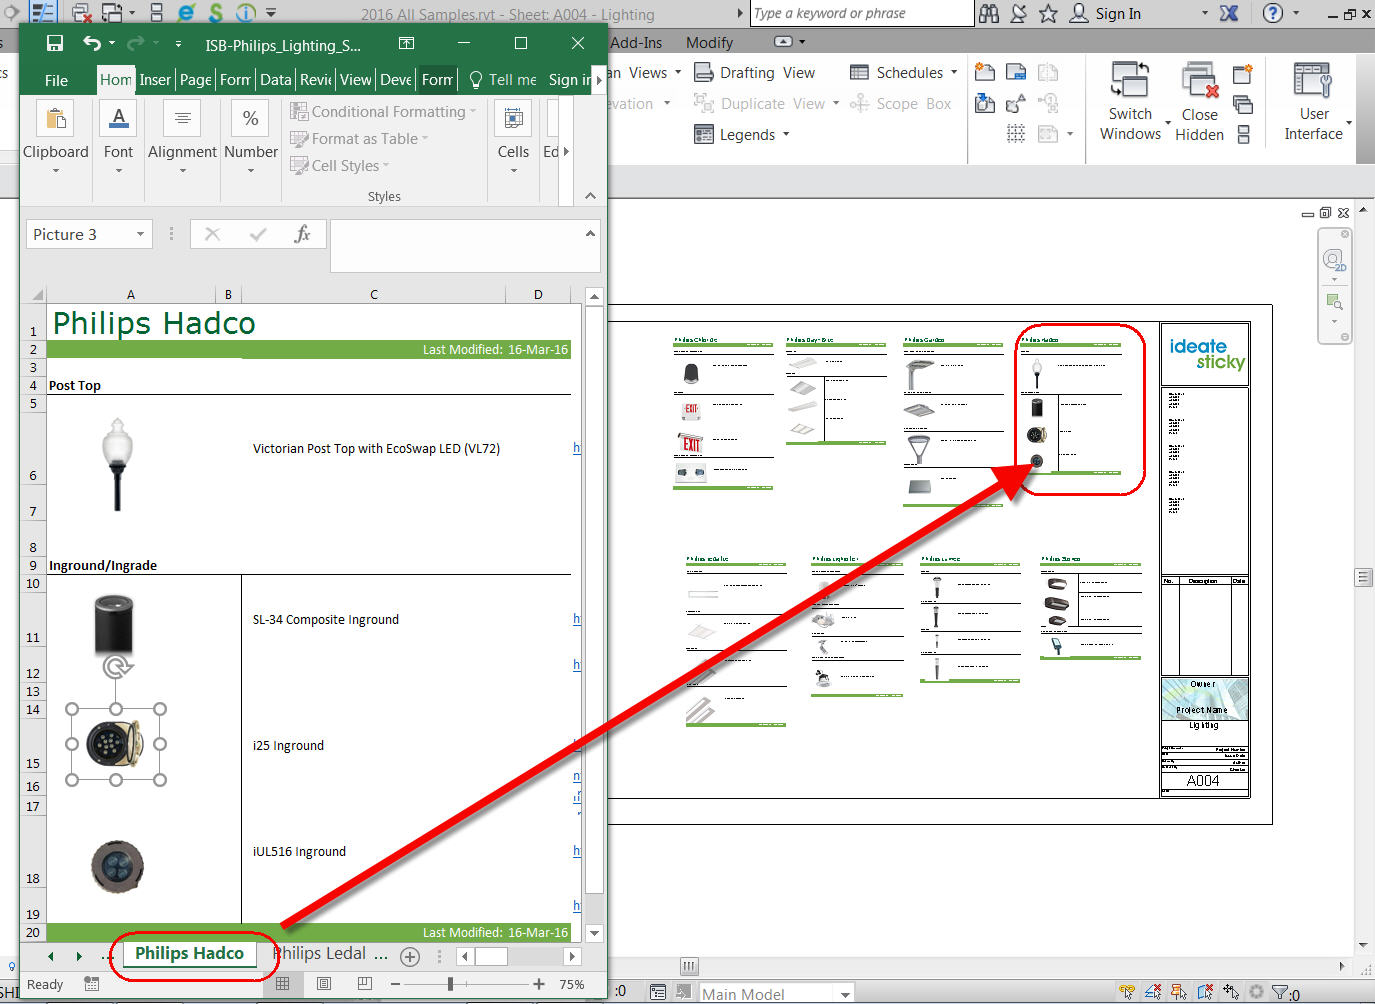 Sample Excel file in Ideate Sticky